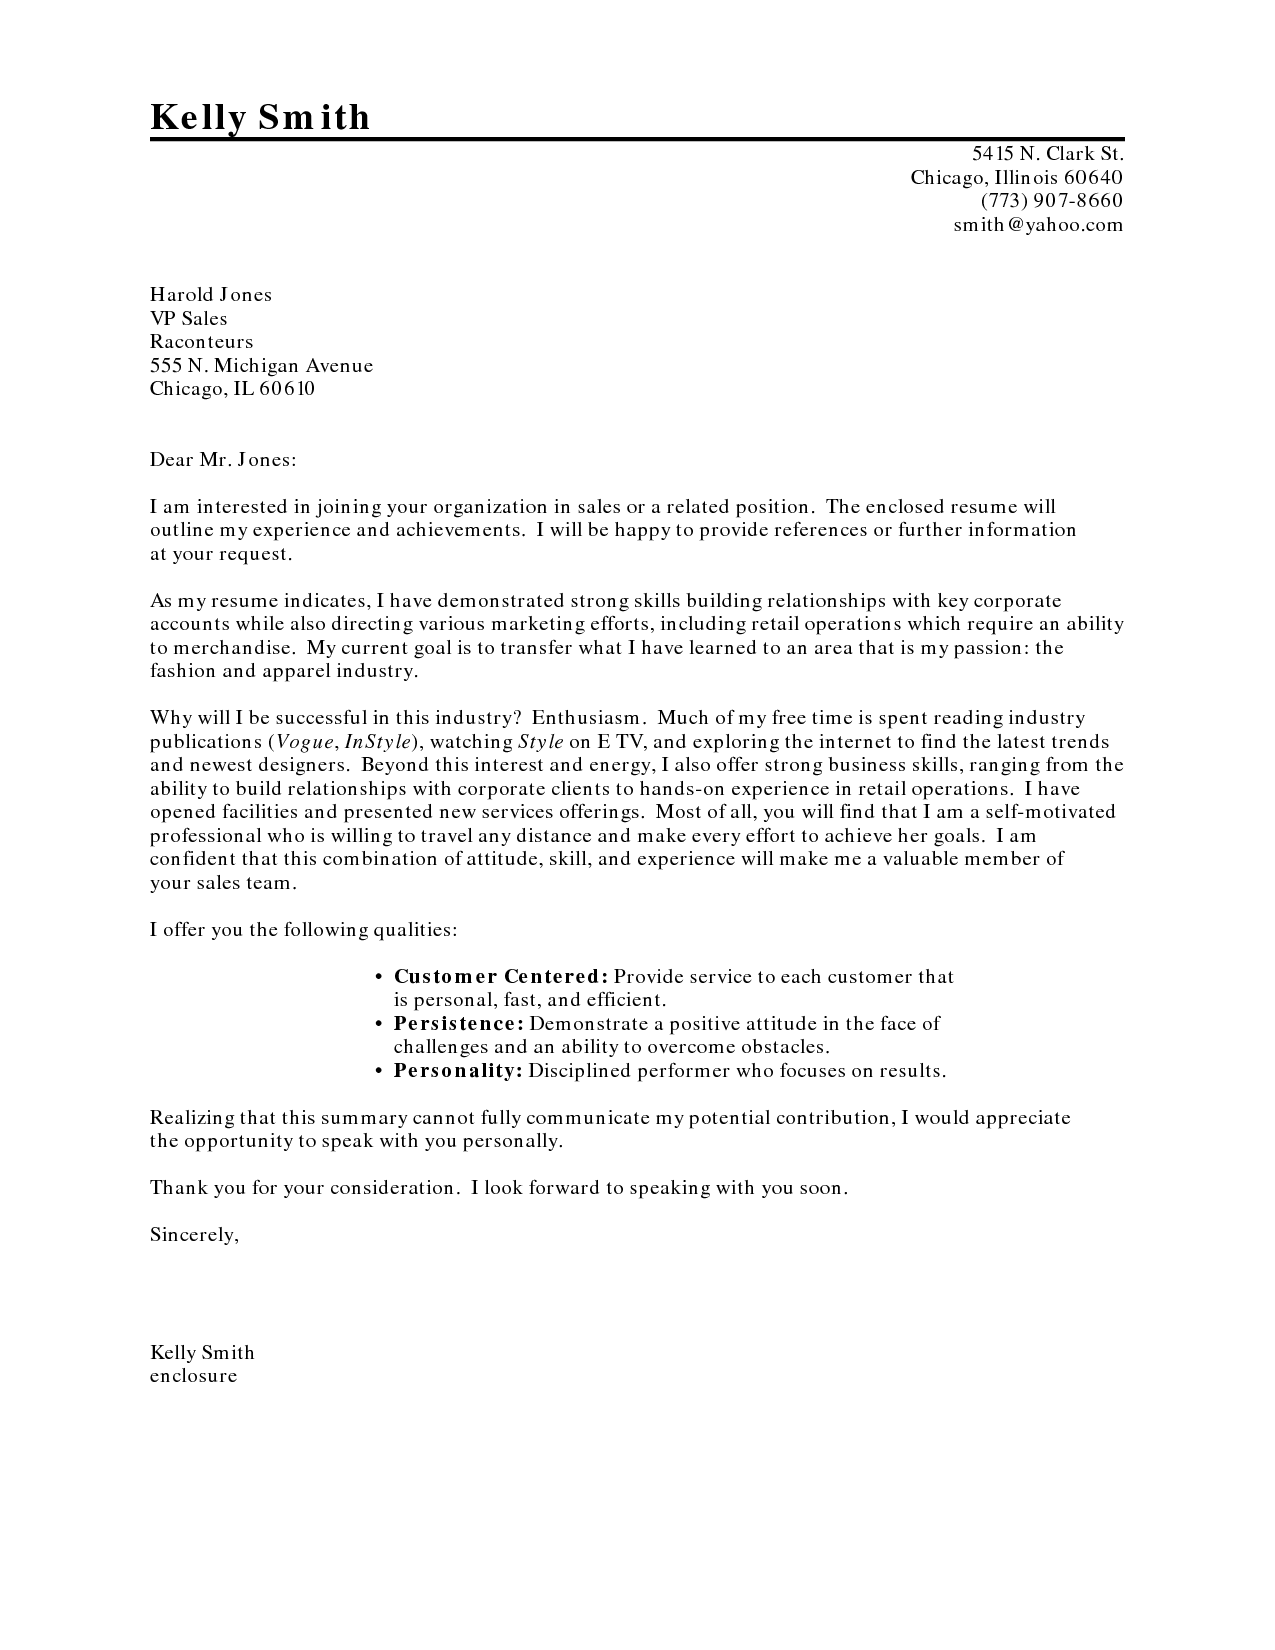 Career change cover lettersimple cover letter application for Change of career cover letter examples